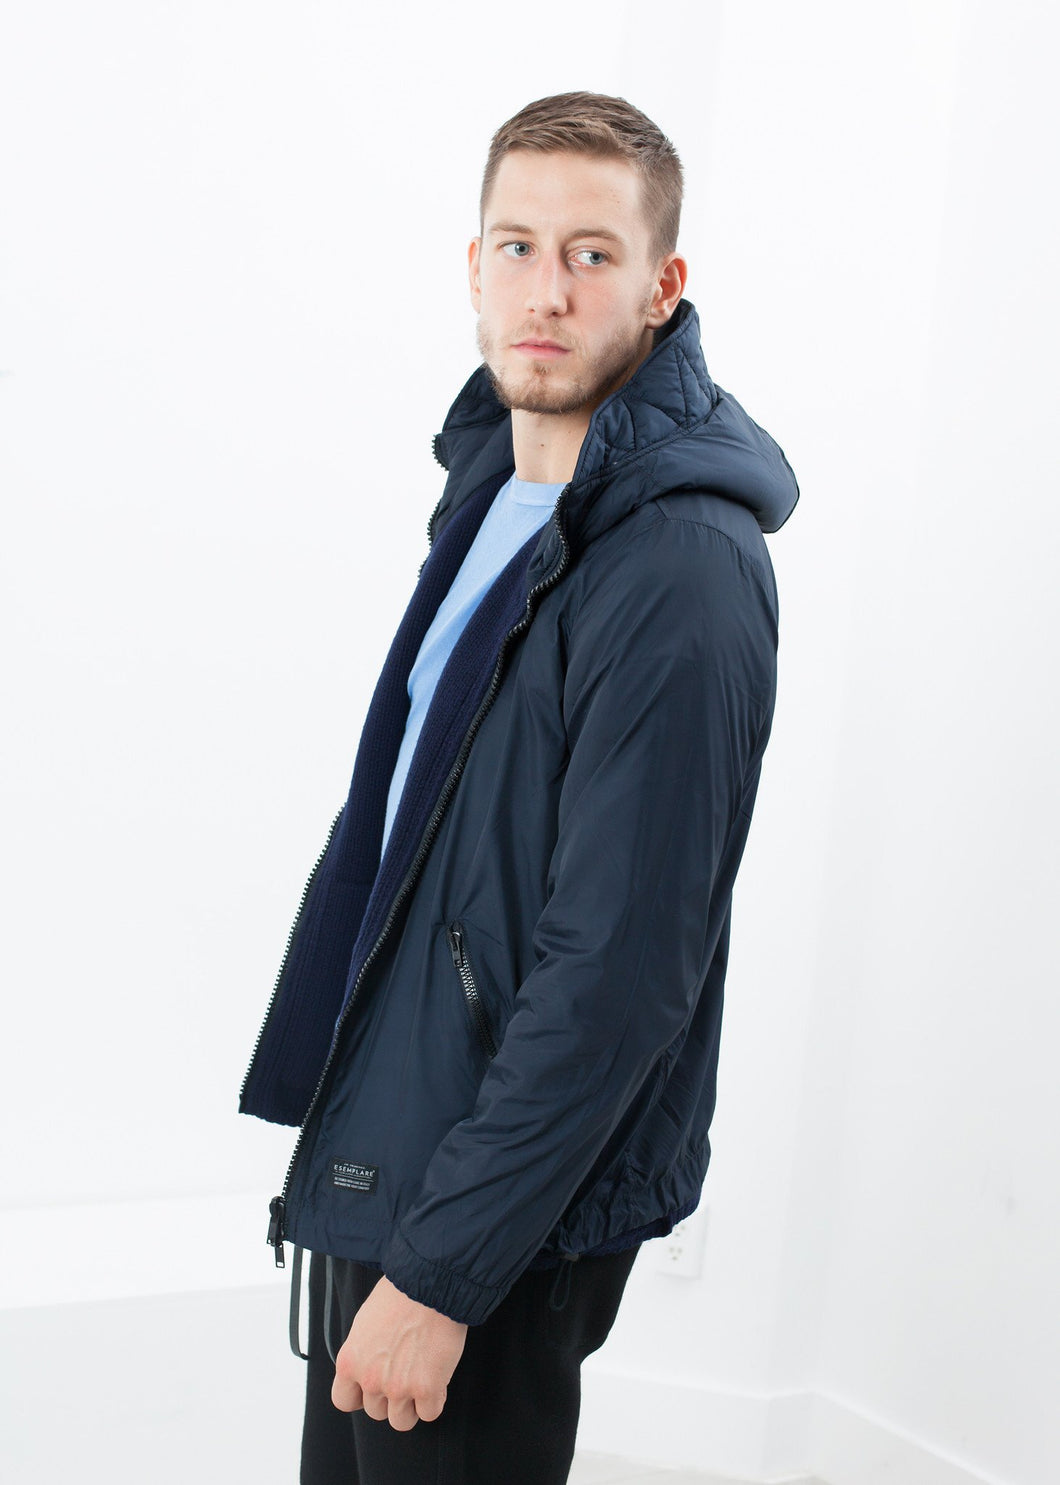 Alverstone Jacket in Midnight